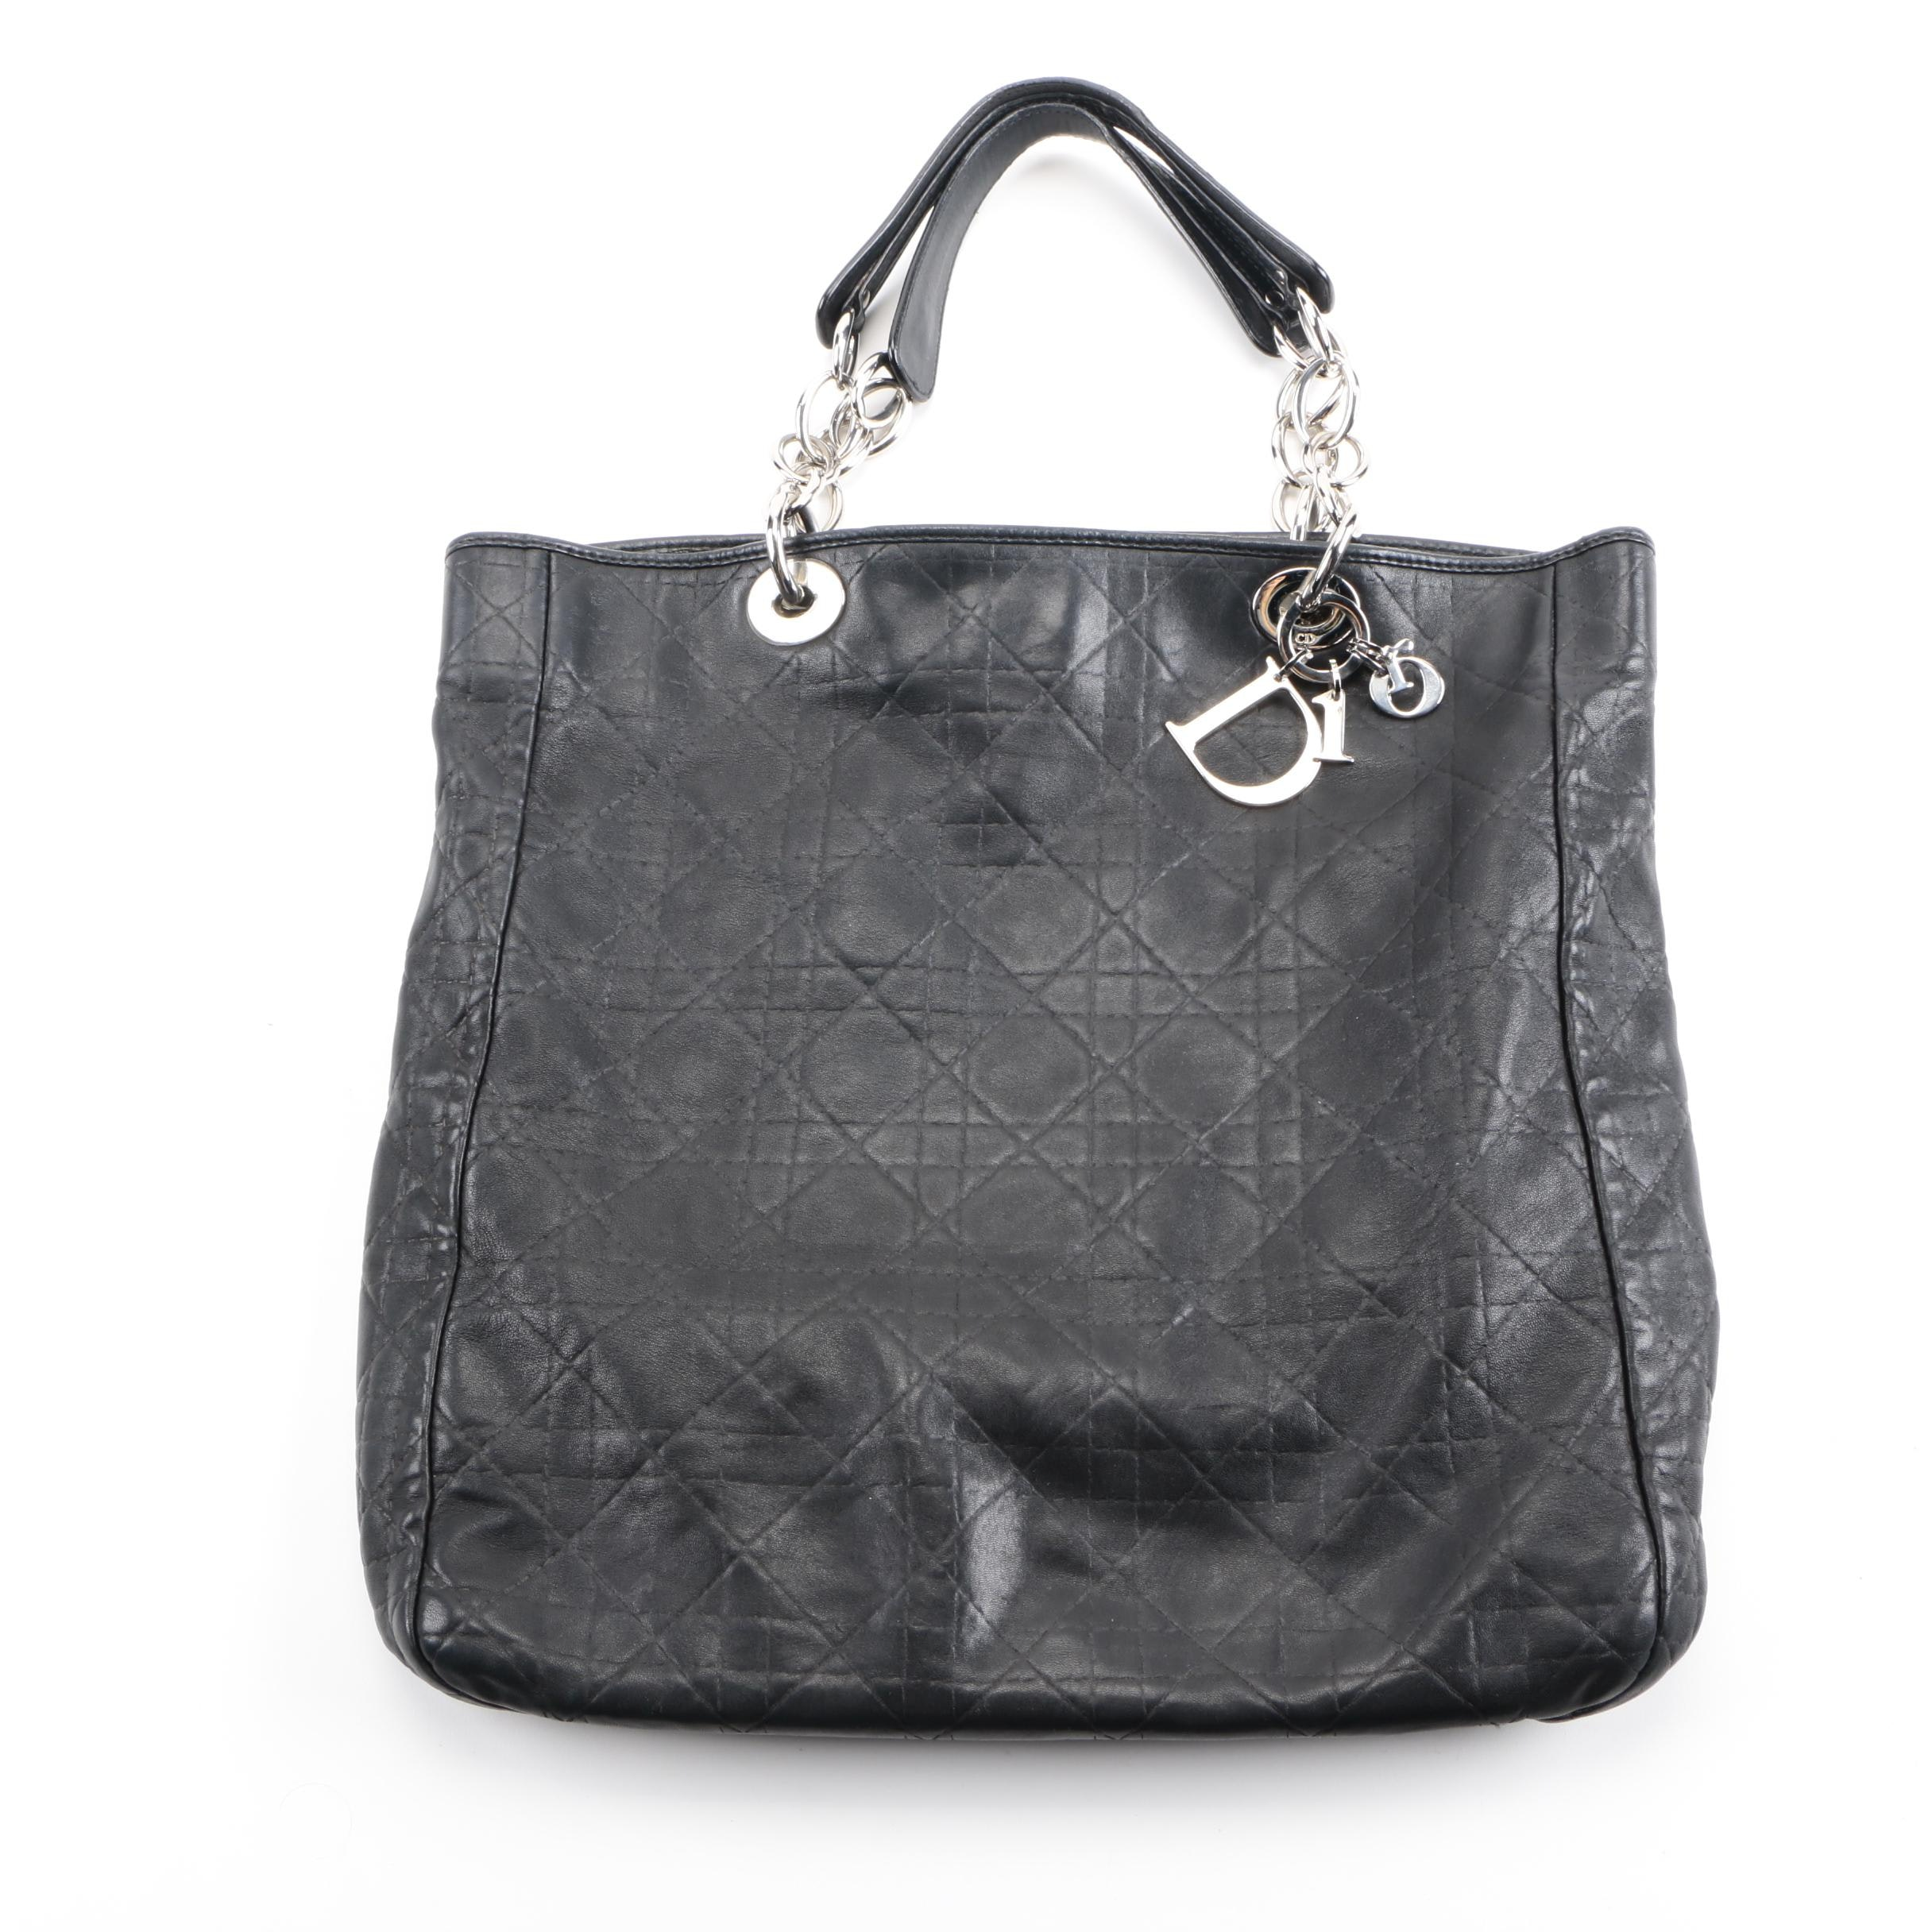 Dior Black Cannage Quilted Lambskin Leather Tote Bag